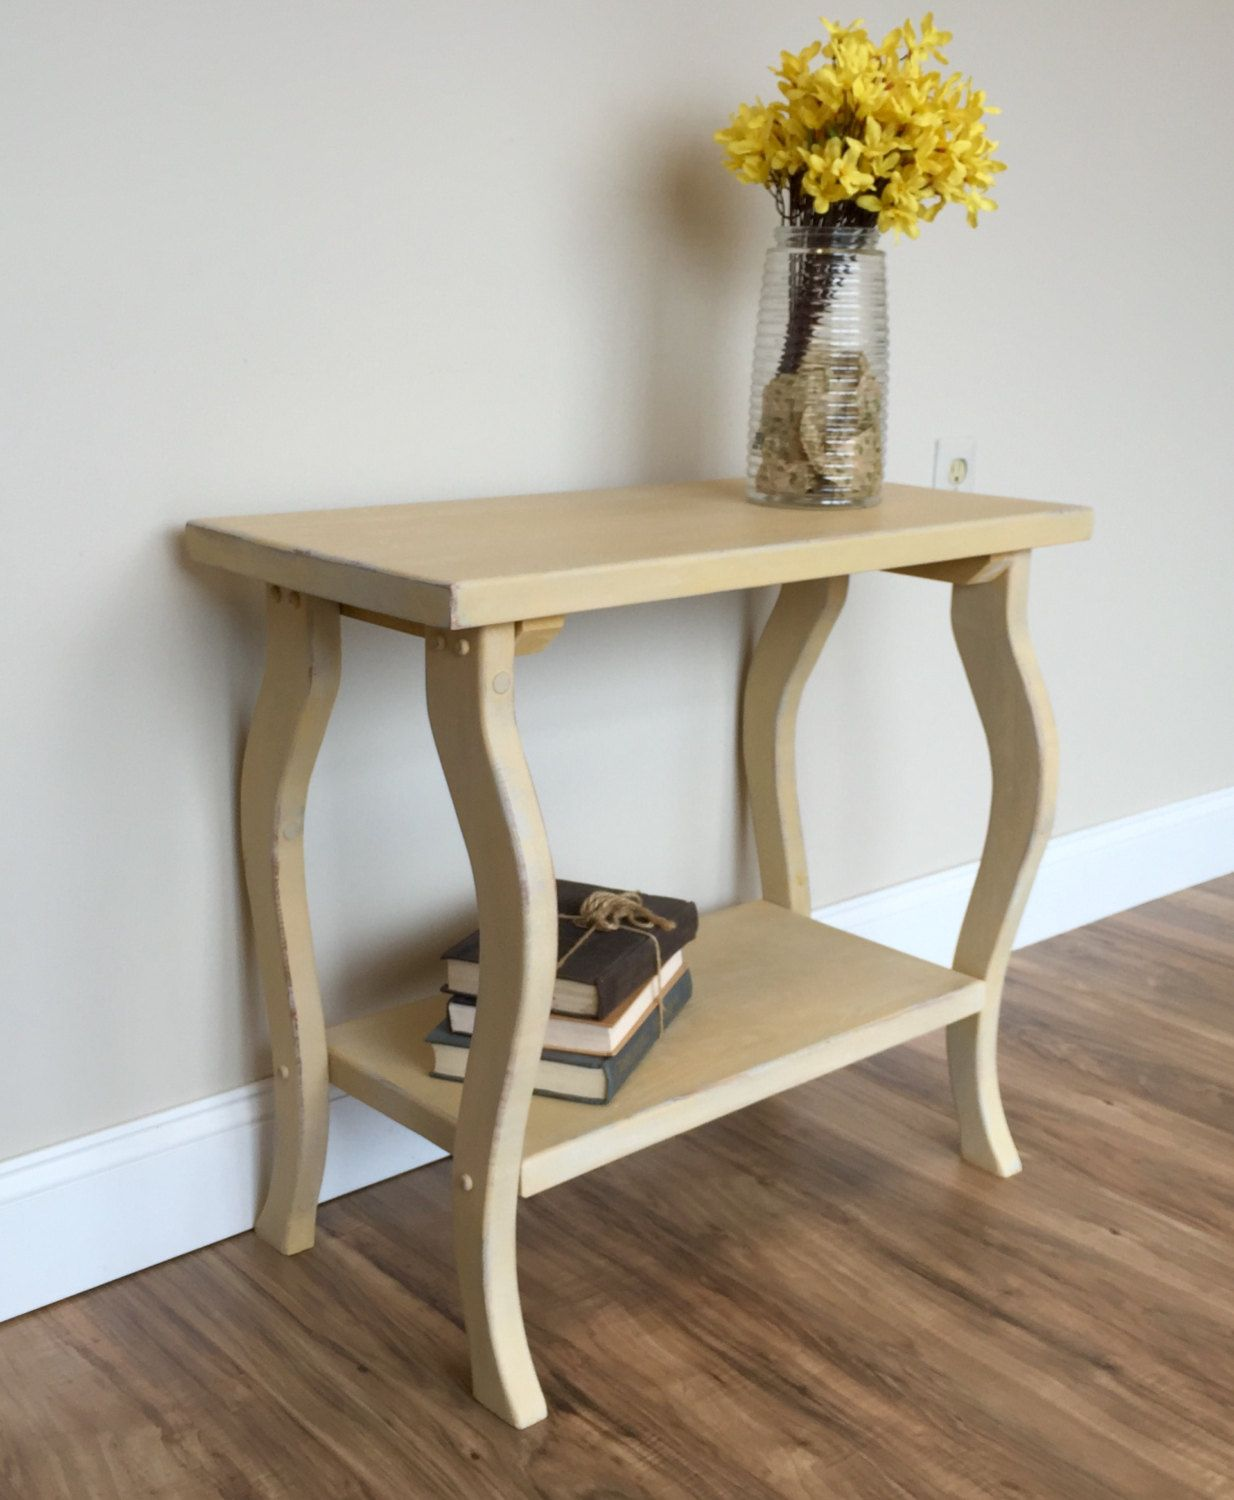 plus redmond decor color decorating white pedestal top table tiny tables hallway bathroom shades lighting ideas small gold lamp target and lamps for farmhouse design living